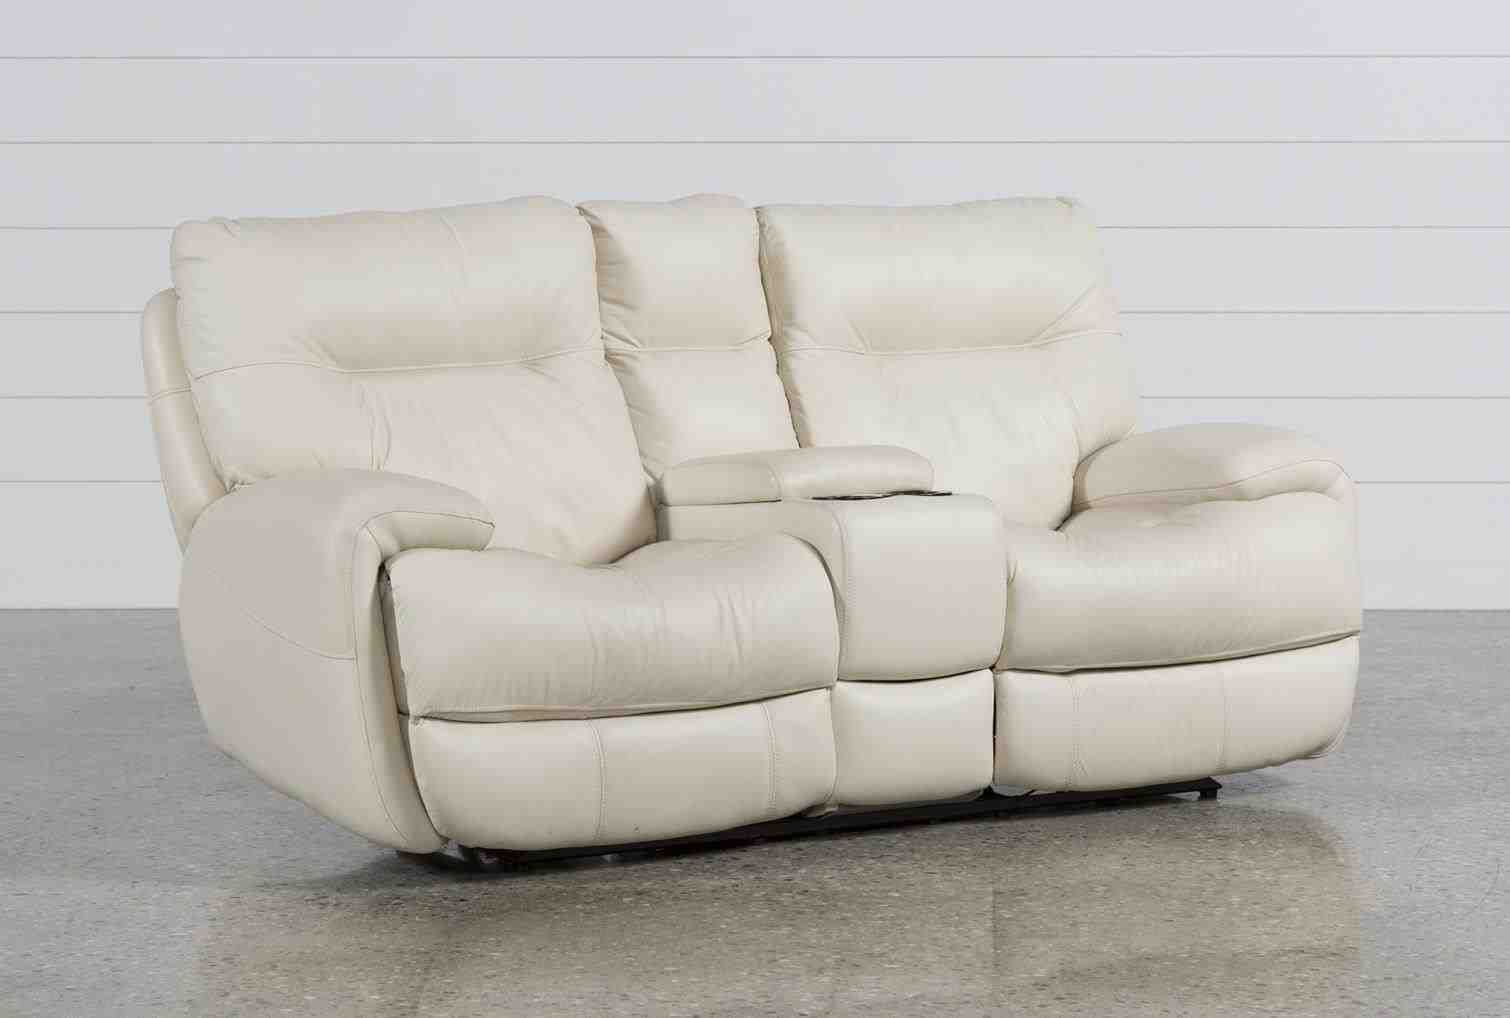 Terrific Cheap Loveseats Under 300 Full Size Of Furniture Loveseats Uwap Interior Chair Design Uwaporg